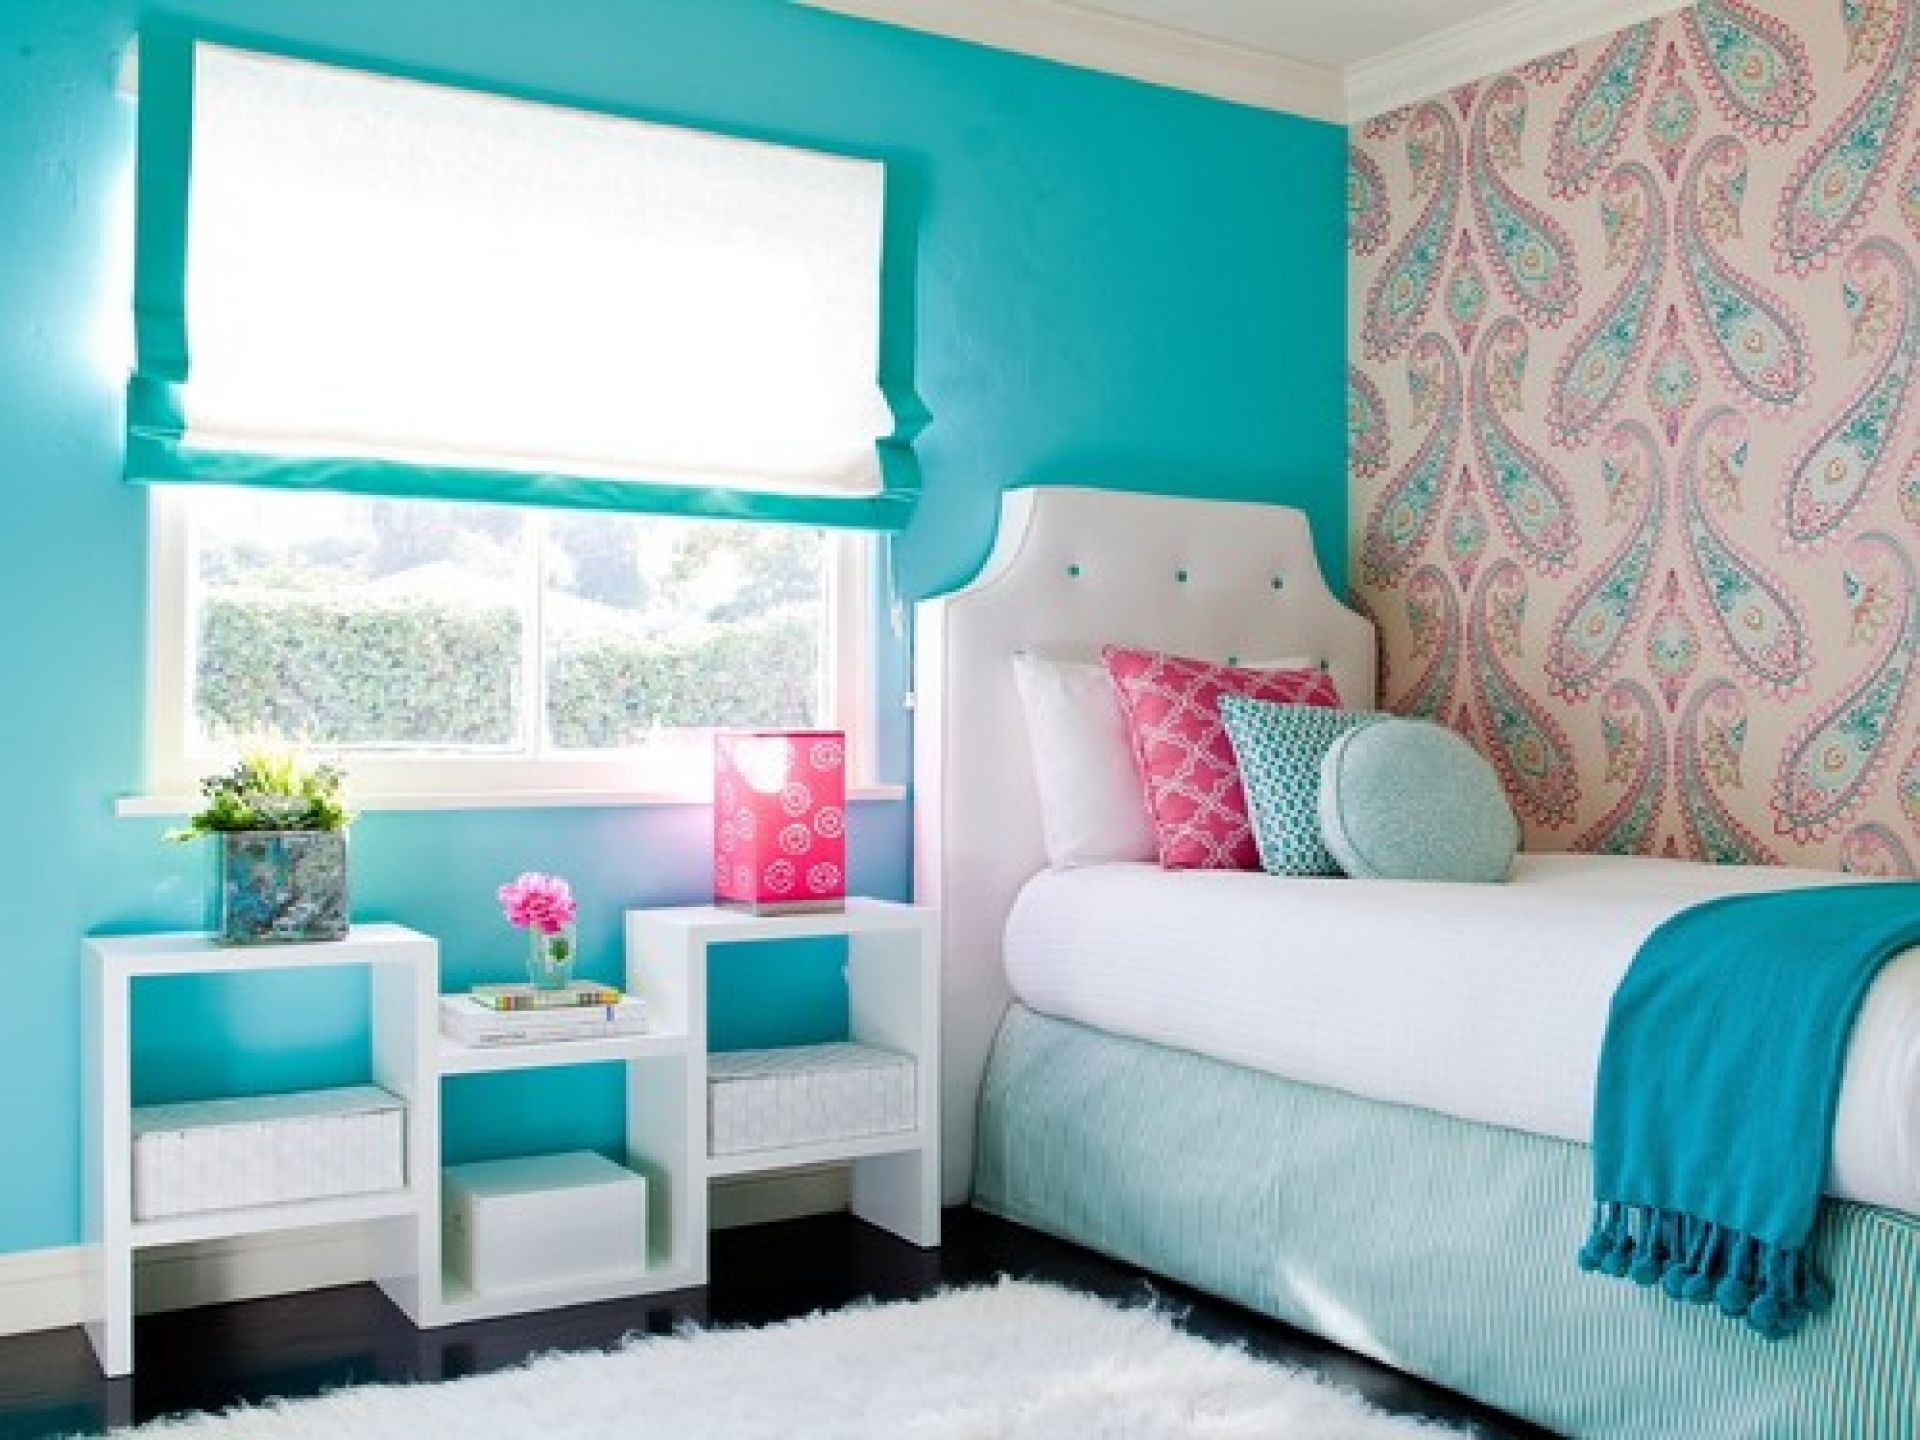 Simple design comfy room colors teenage girl bedroom wall for Bedroom ideas for teen girls